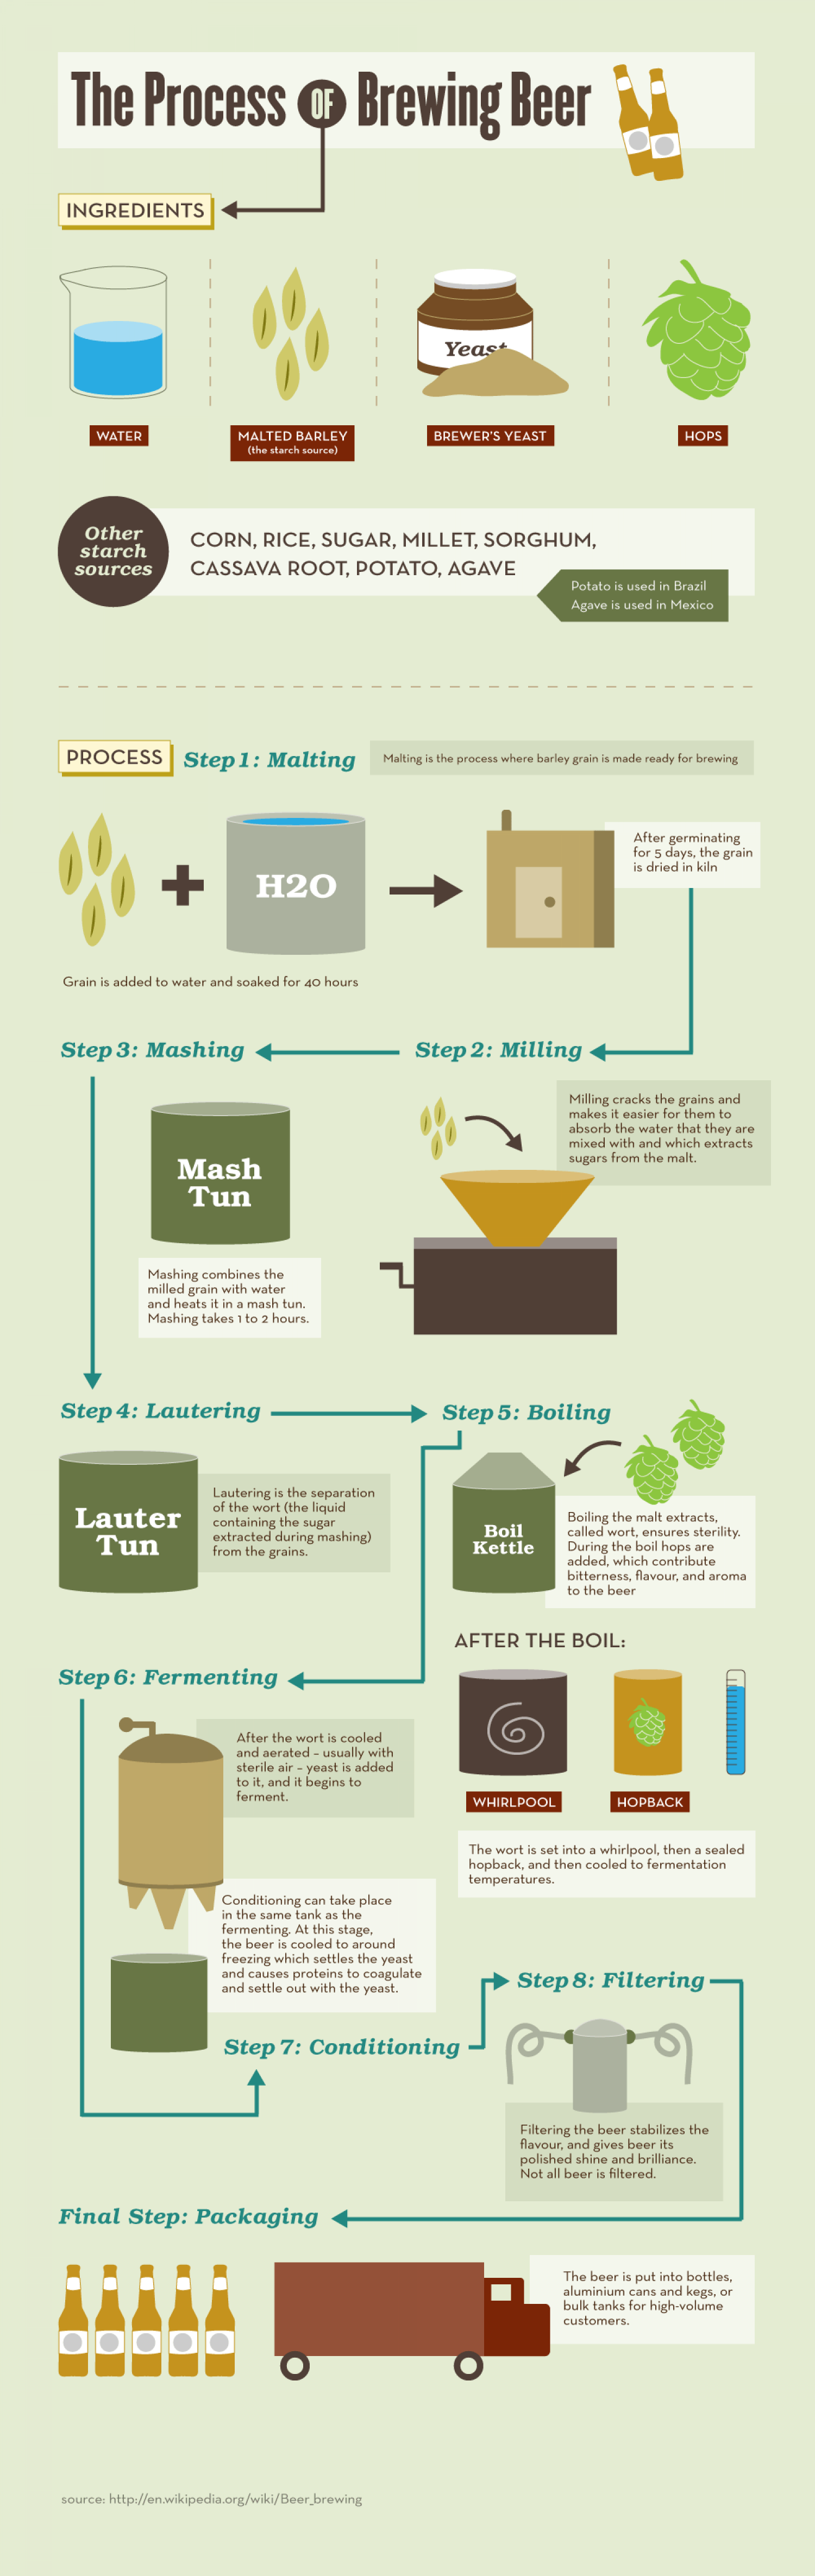 The Process of Brewing Beer Infographic